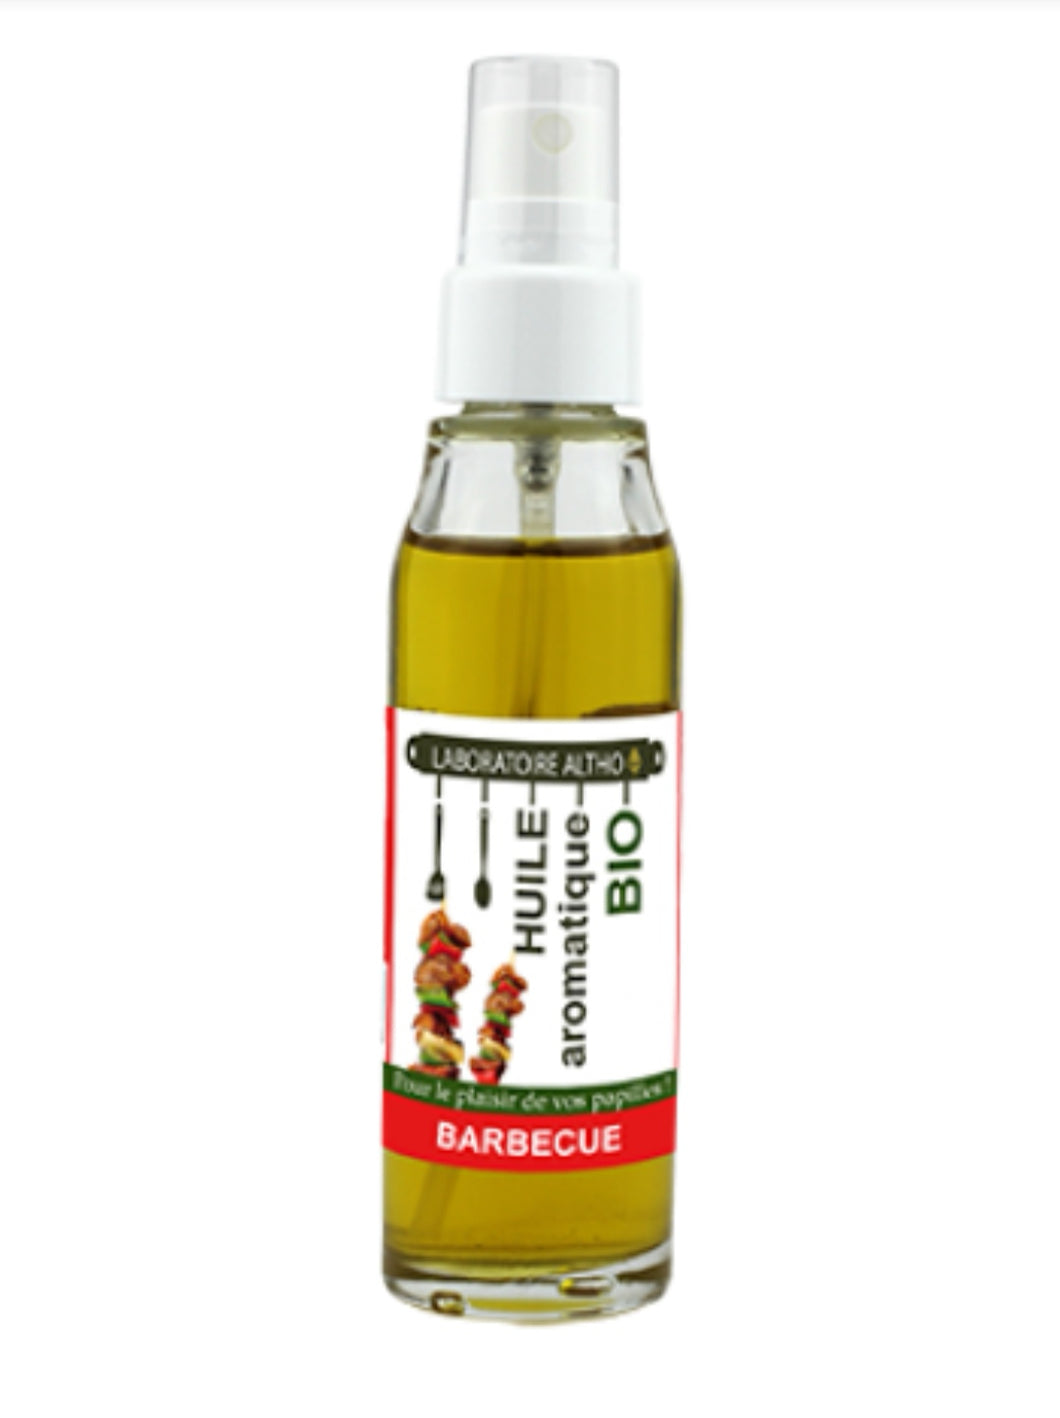 Barbecue - Organic Cooking Oil 50ml